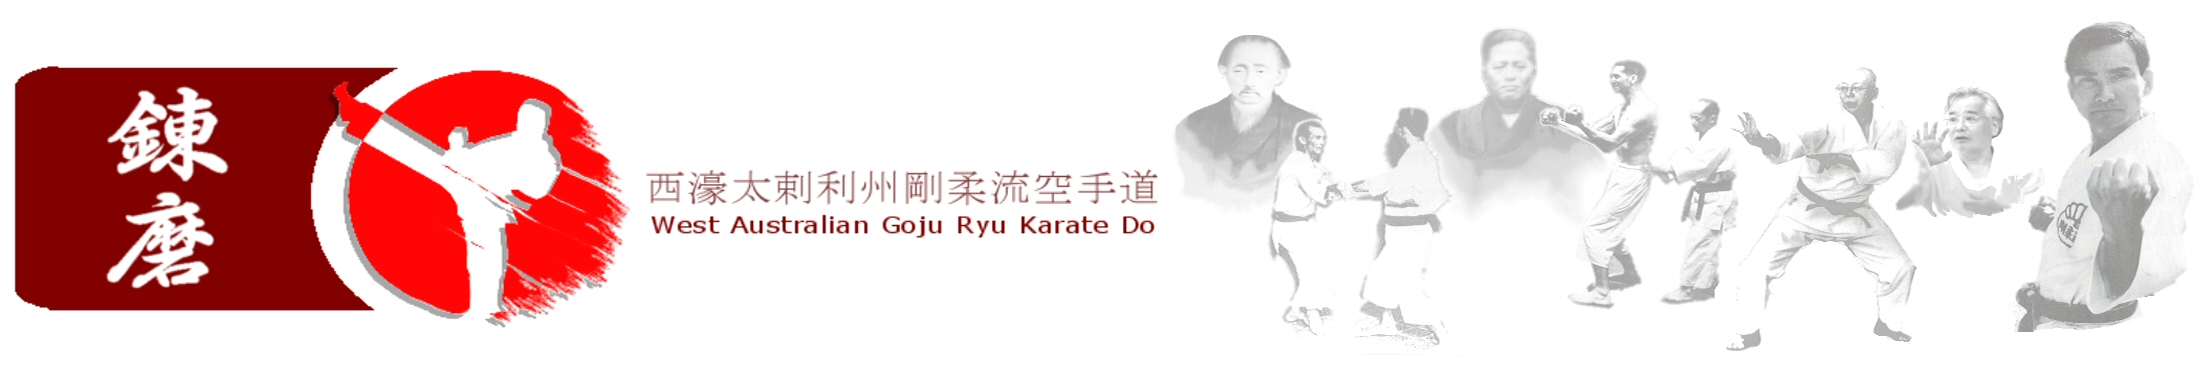 Karate Perth Western Australia WA Martial Arts Self Defence Defense Goju